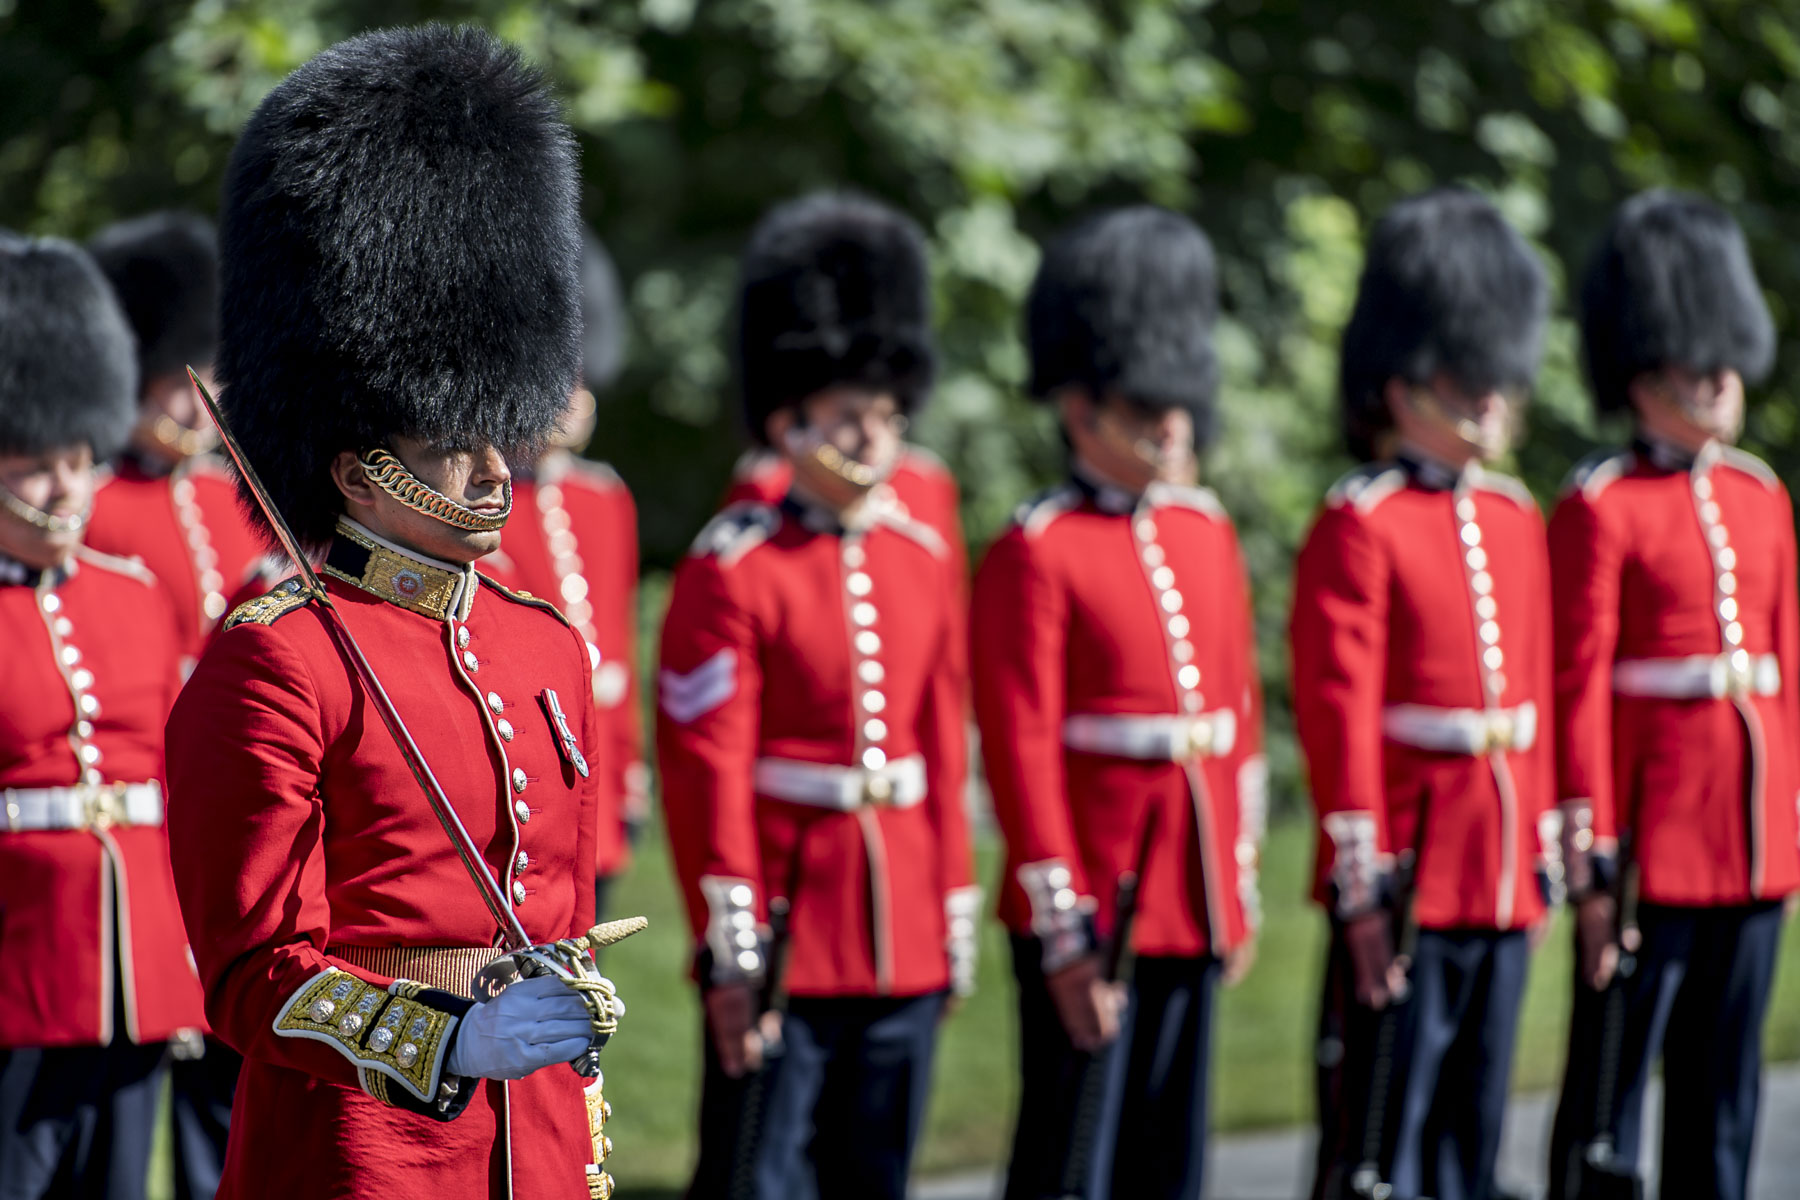 Every guard, musician and member of the support staff is a trained Regular or Reserve member of the CAF.